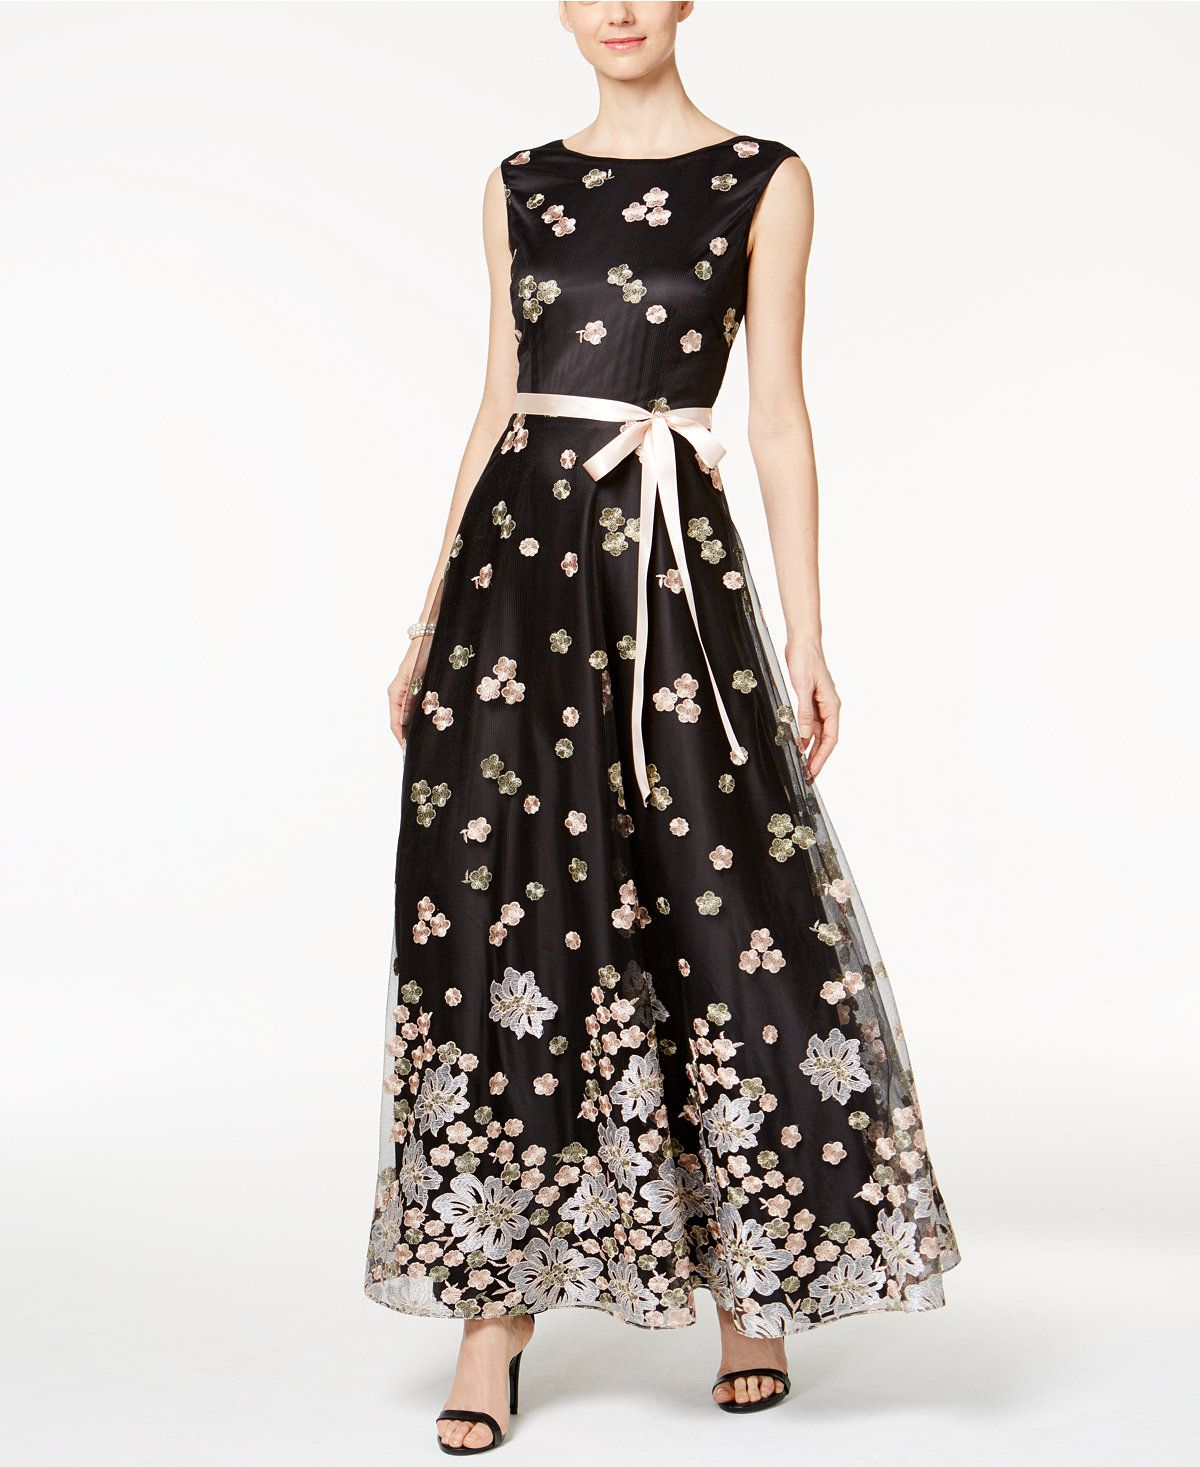 Tahari asl floral embroidered sash gown black gowns floral